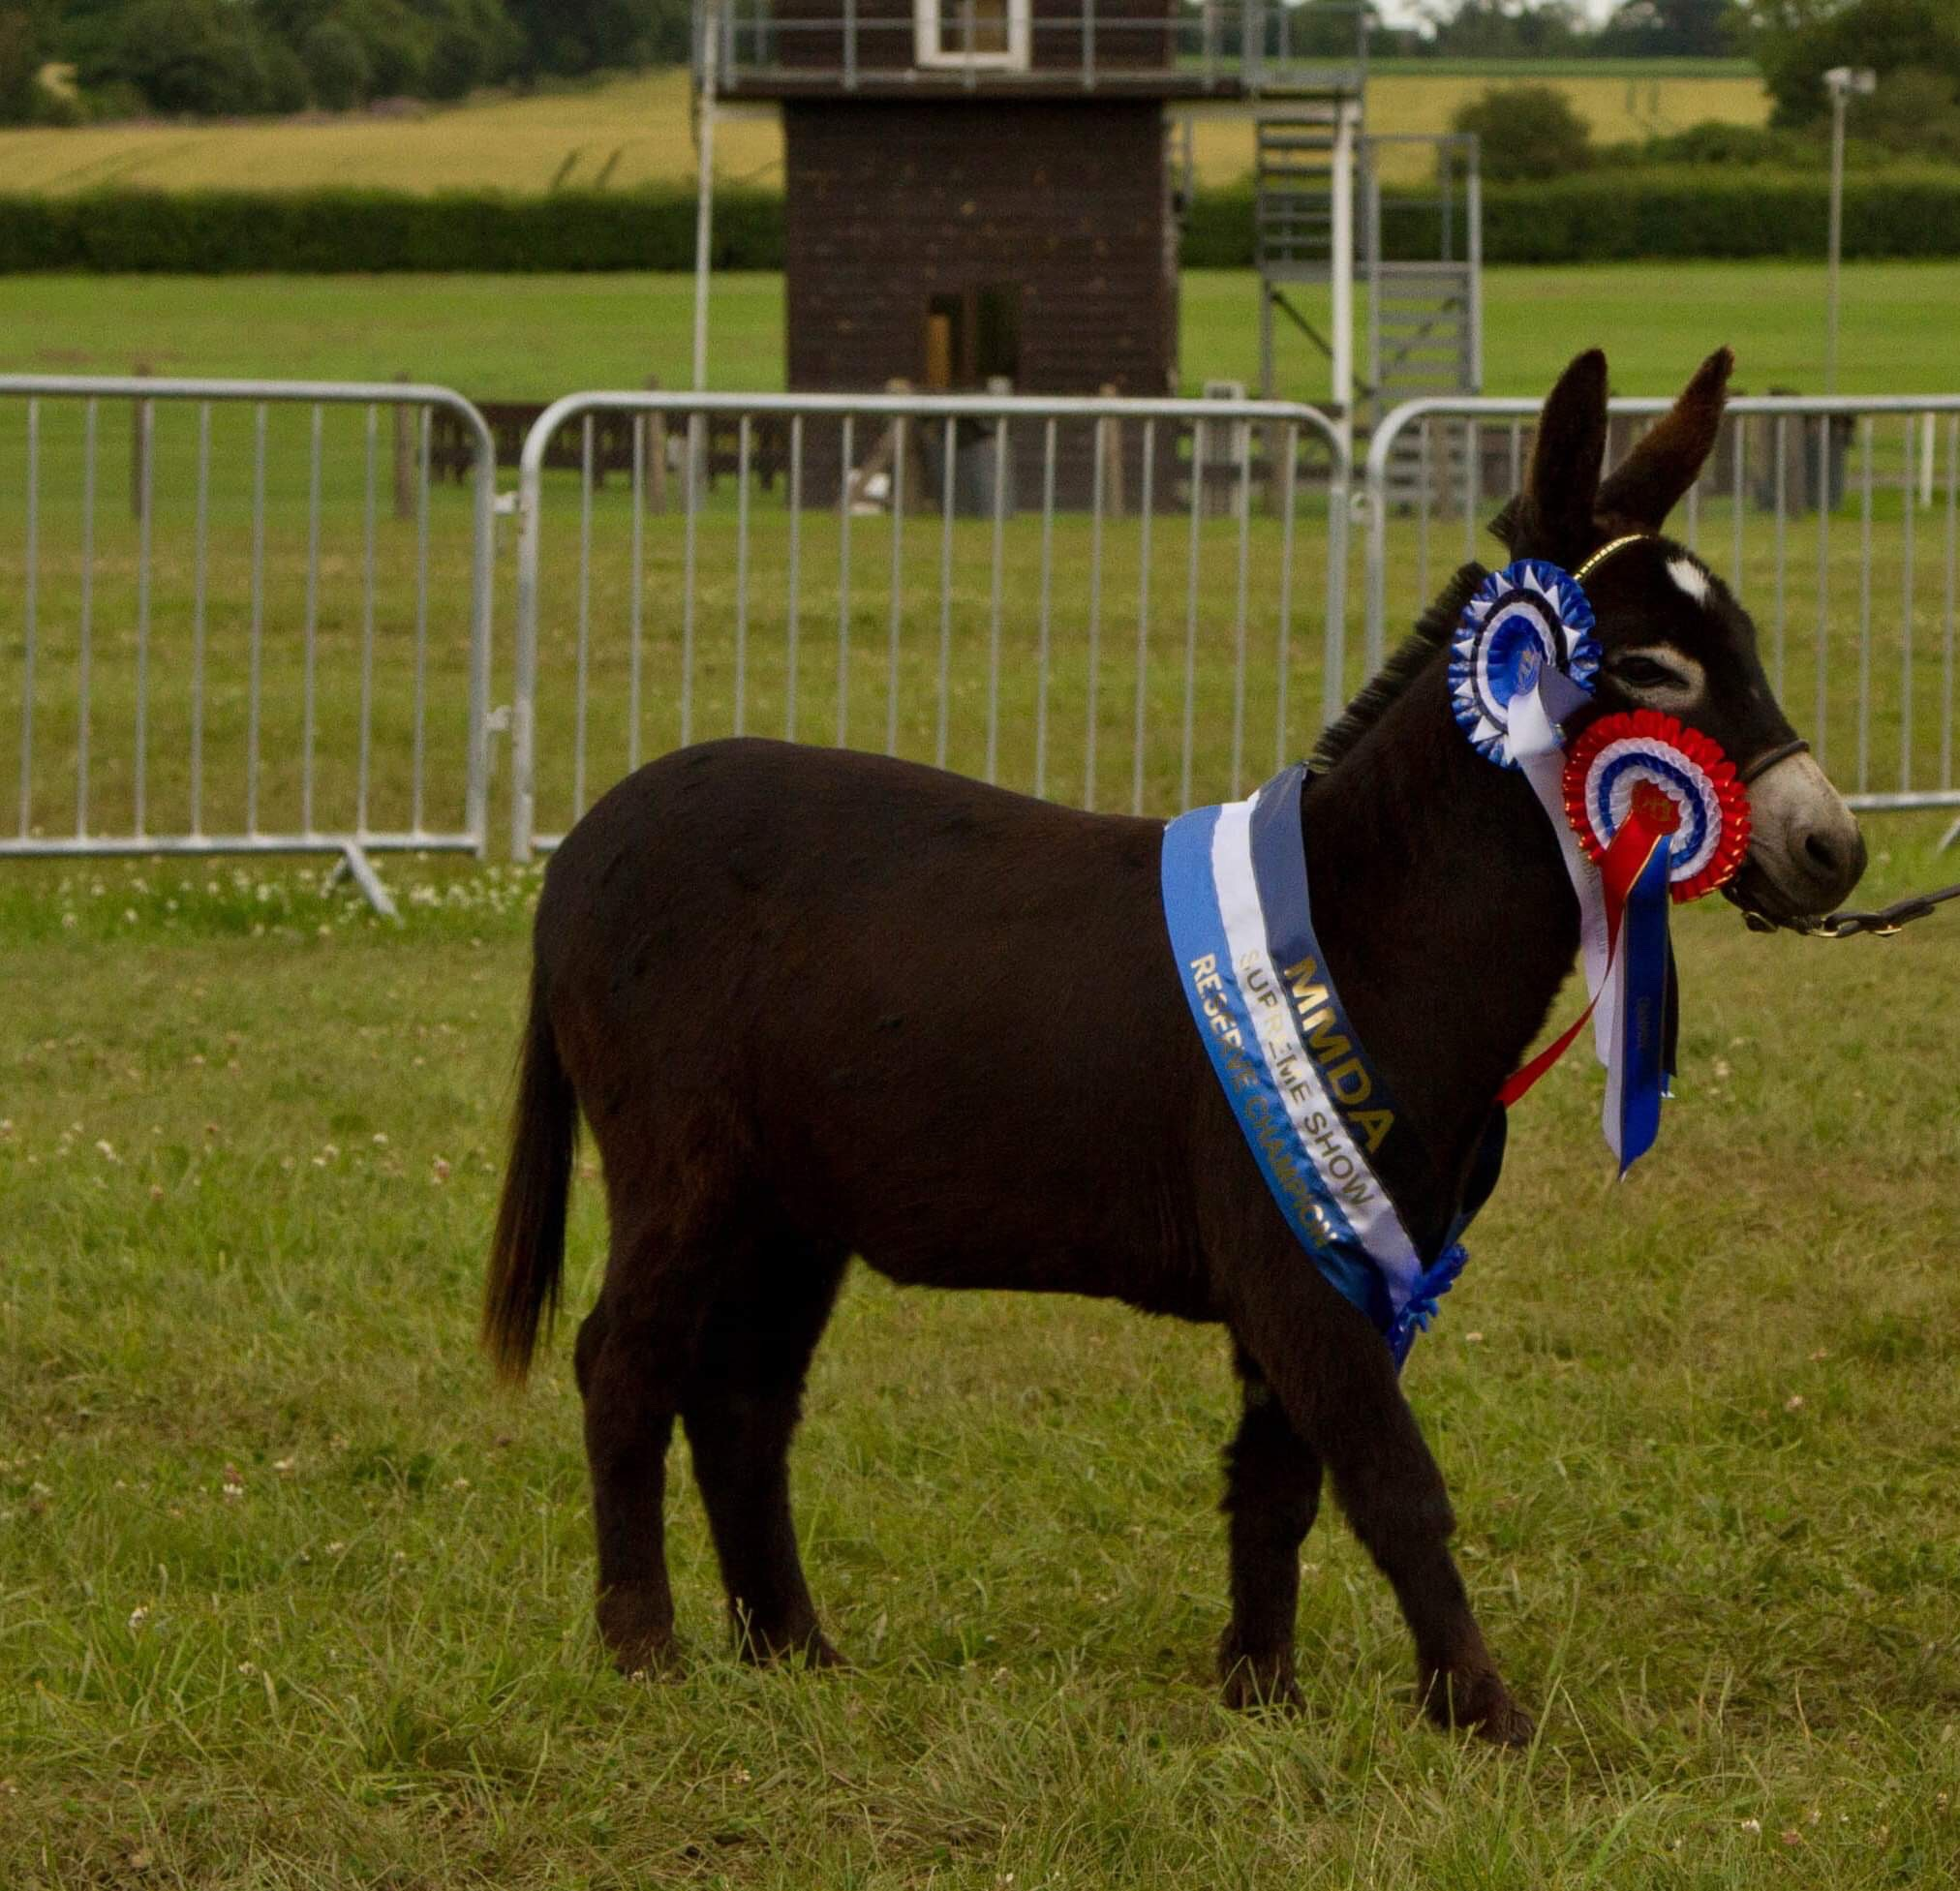 Miniature Donkey Stallion Bling, from Wellground Miniature Donkeys